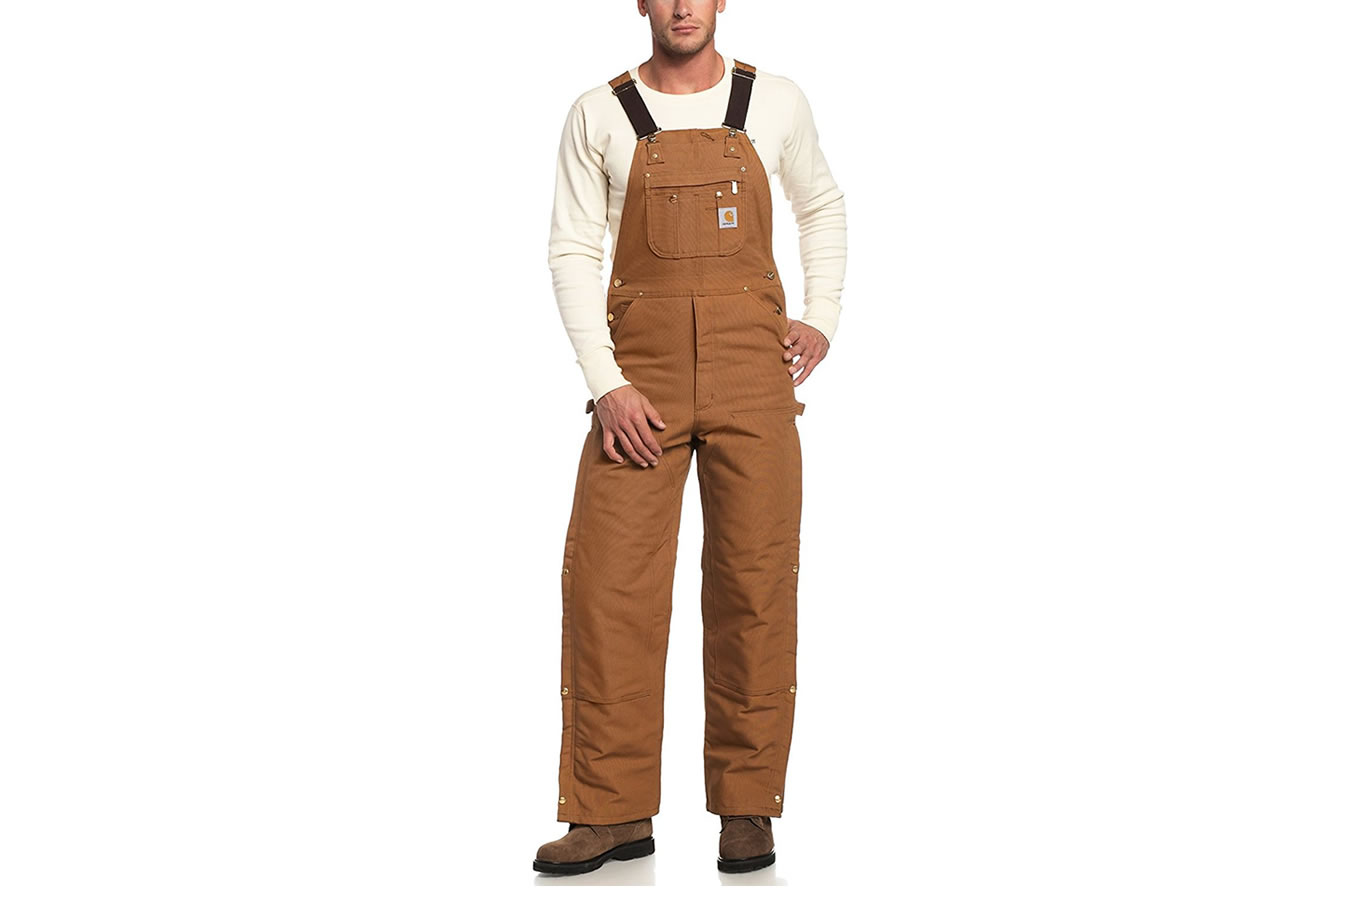 cae54f4a62 Carhartt Duck Zip-to-Thigh Bib Overall/Quilt Lined   Vance Outdoors